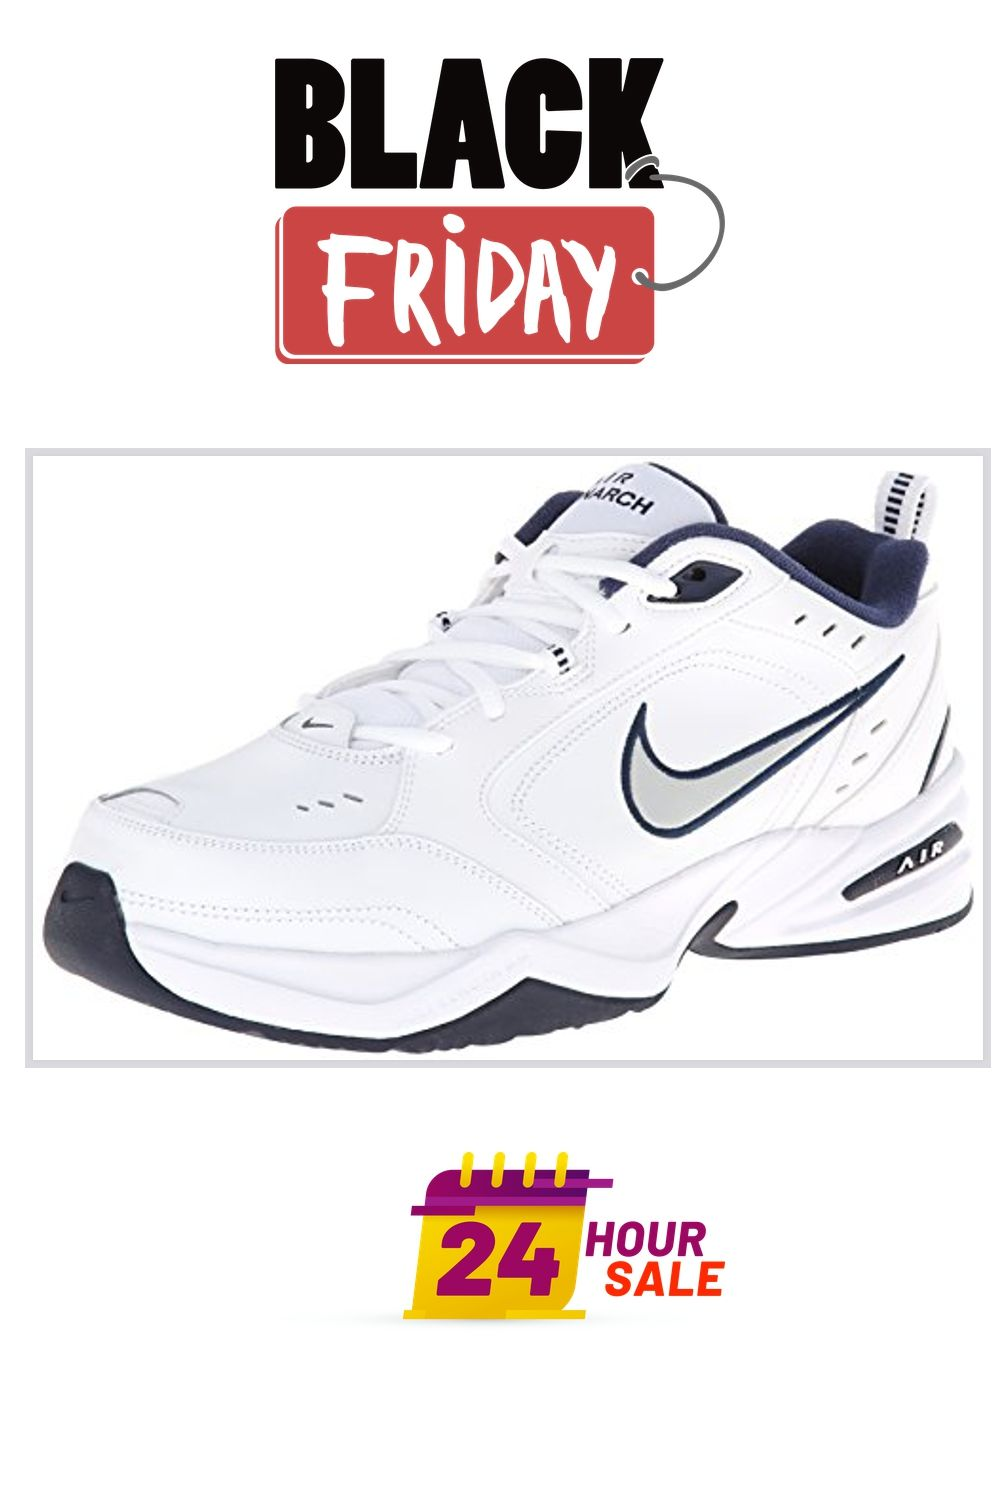 Grab Now The Best Nike Labor Day Deals 2020 25 Off Labor Day Deal In 2020 Nike Black Friday Nike Nike Sportswear Women